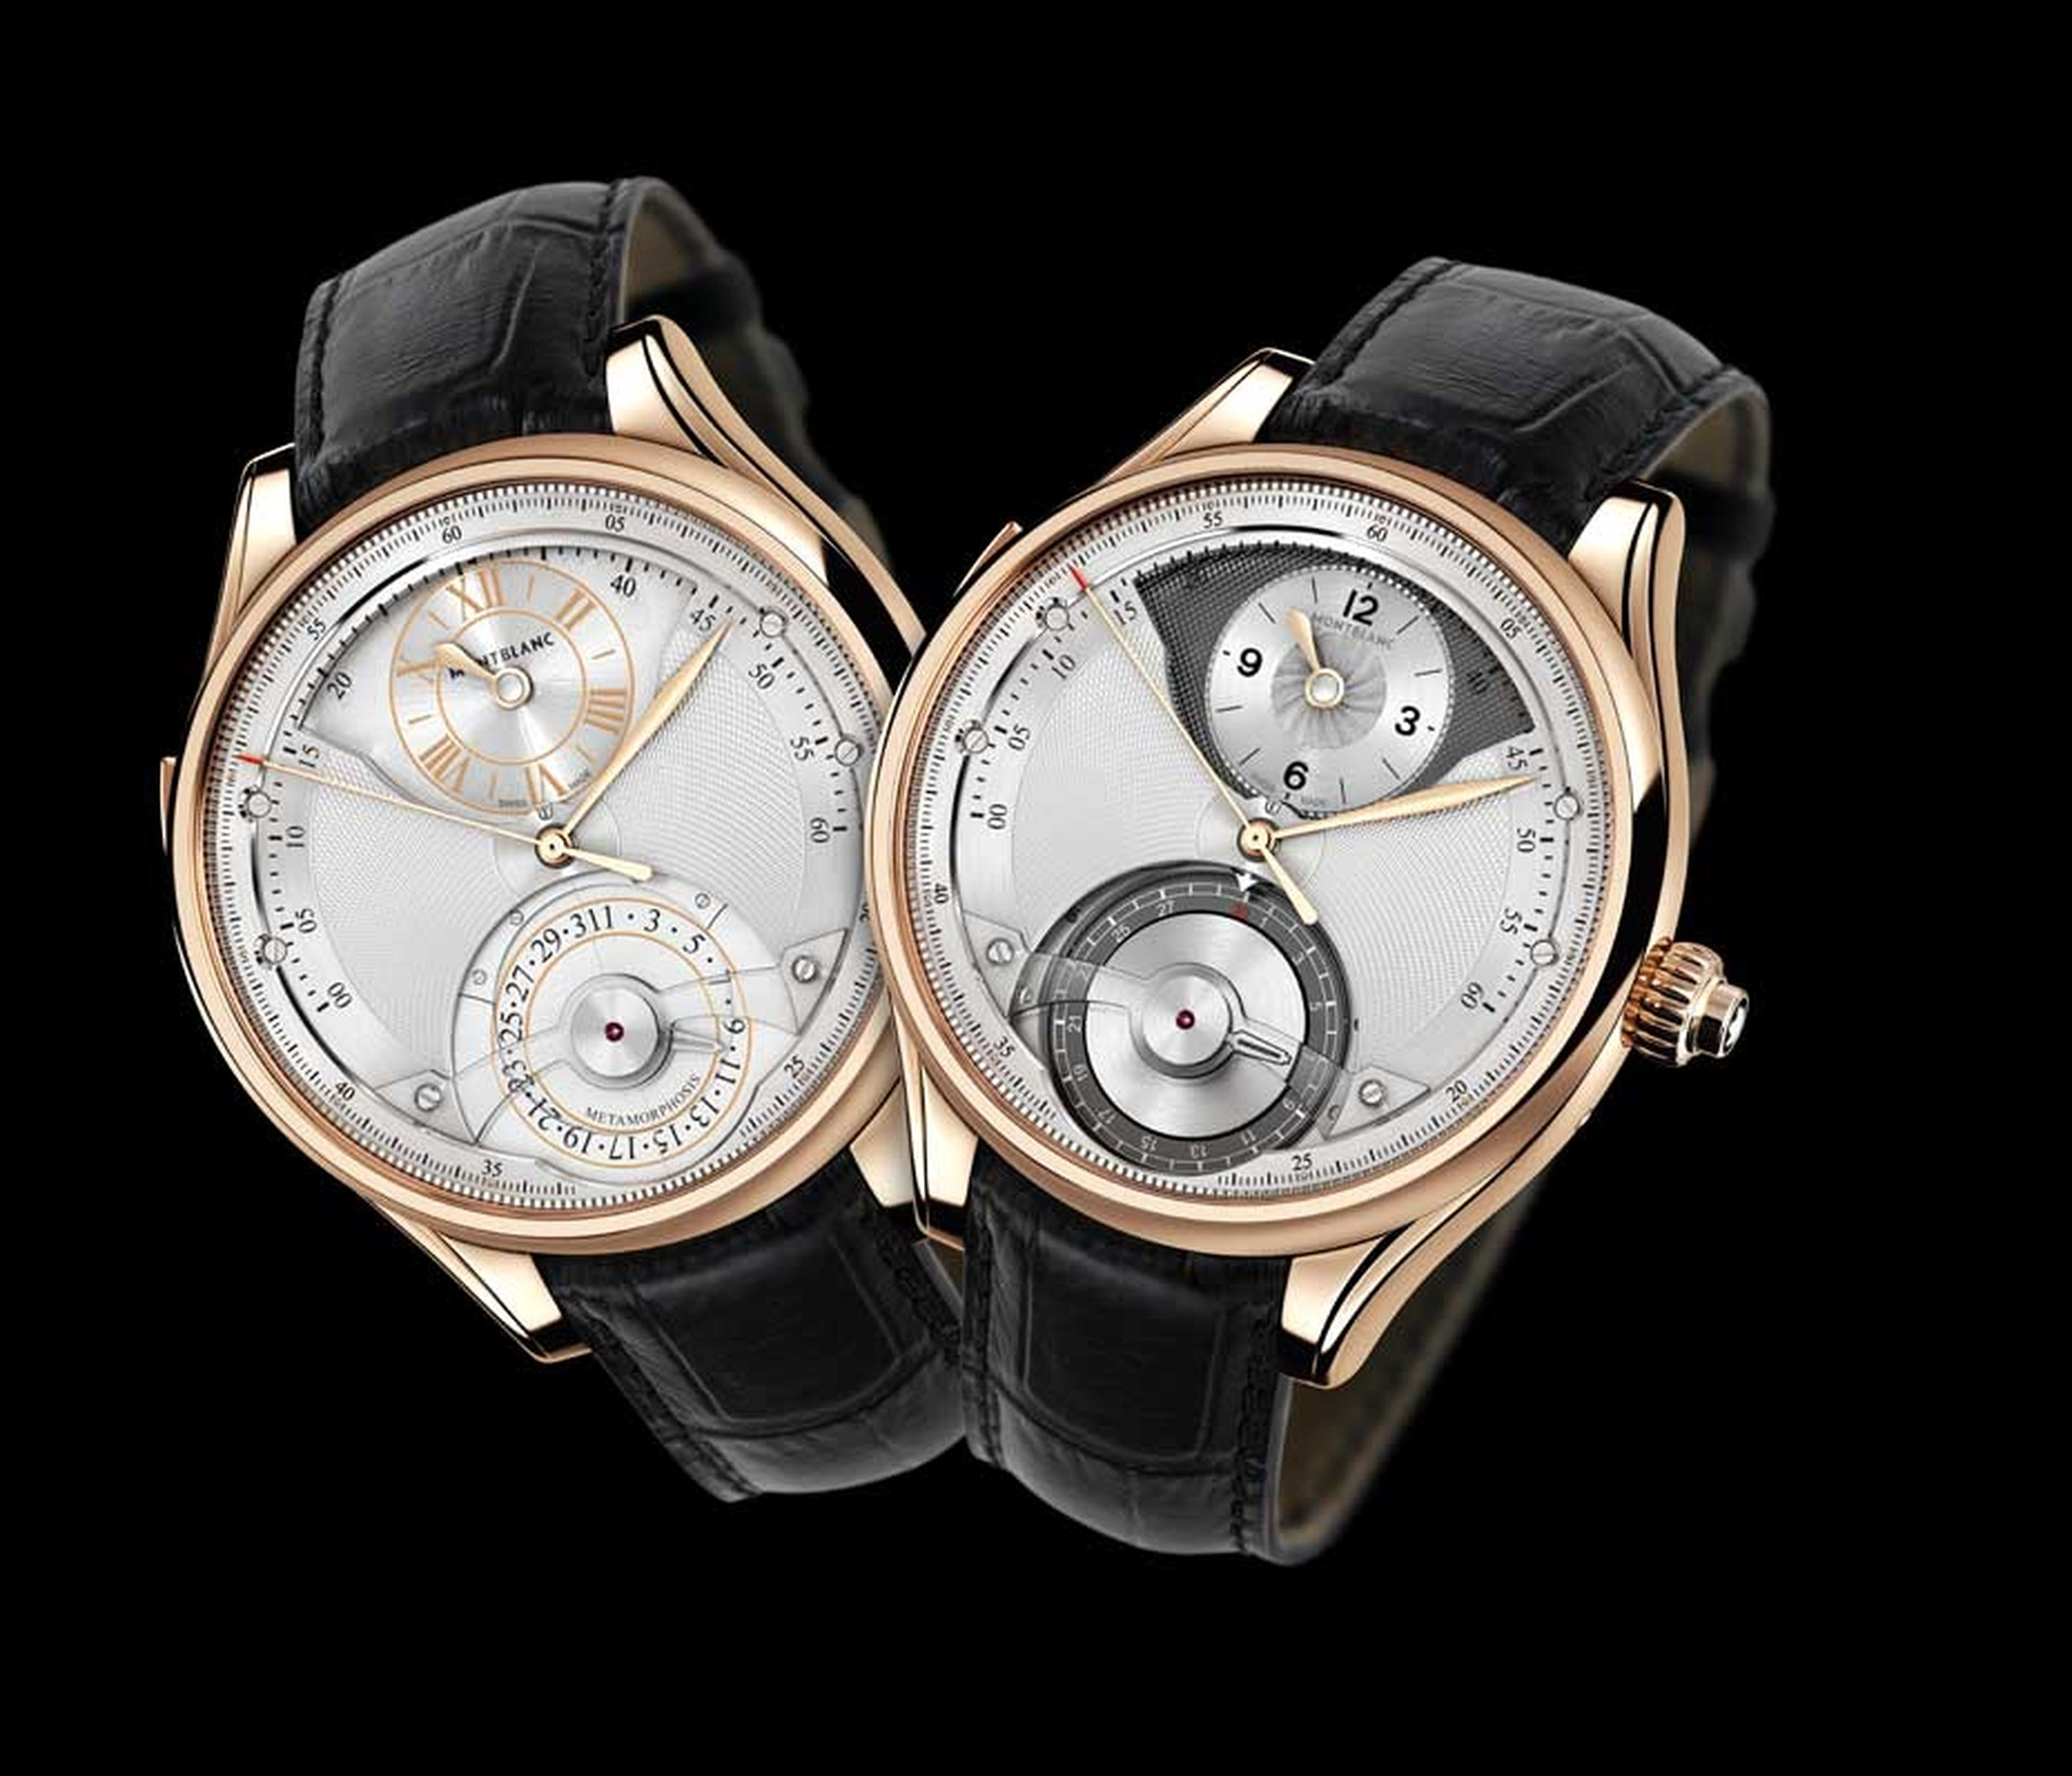 Montblanc Metamorphosis II watch is a master of transformation allowing you to view the conventional hour, minute, seconds and date on one dial, and chronograph functions on the dial hidden below.